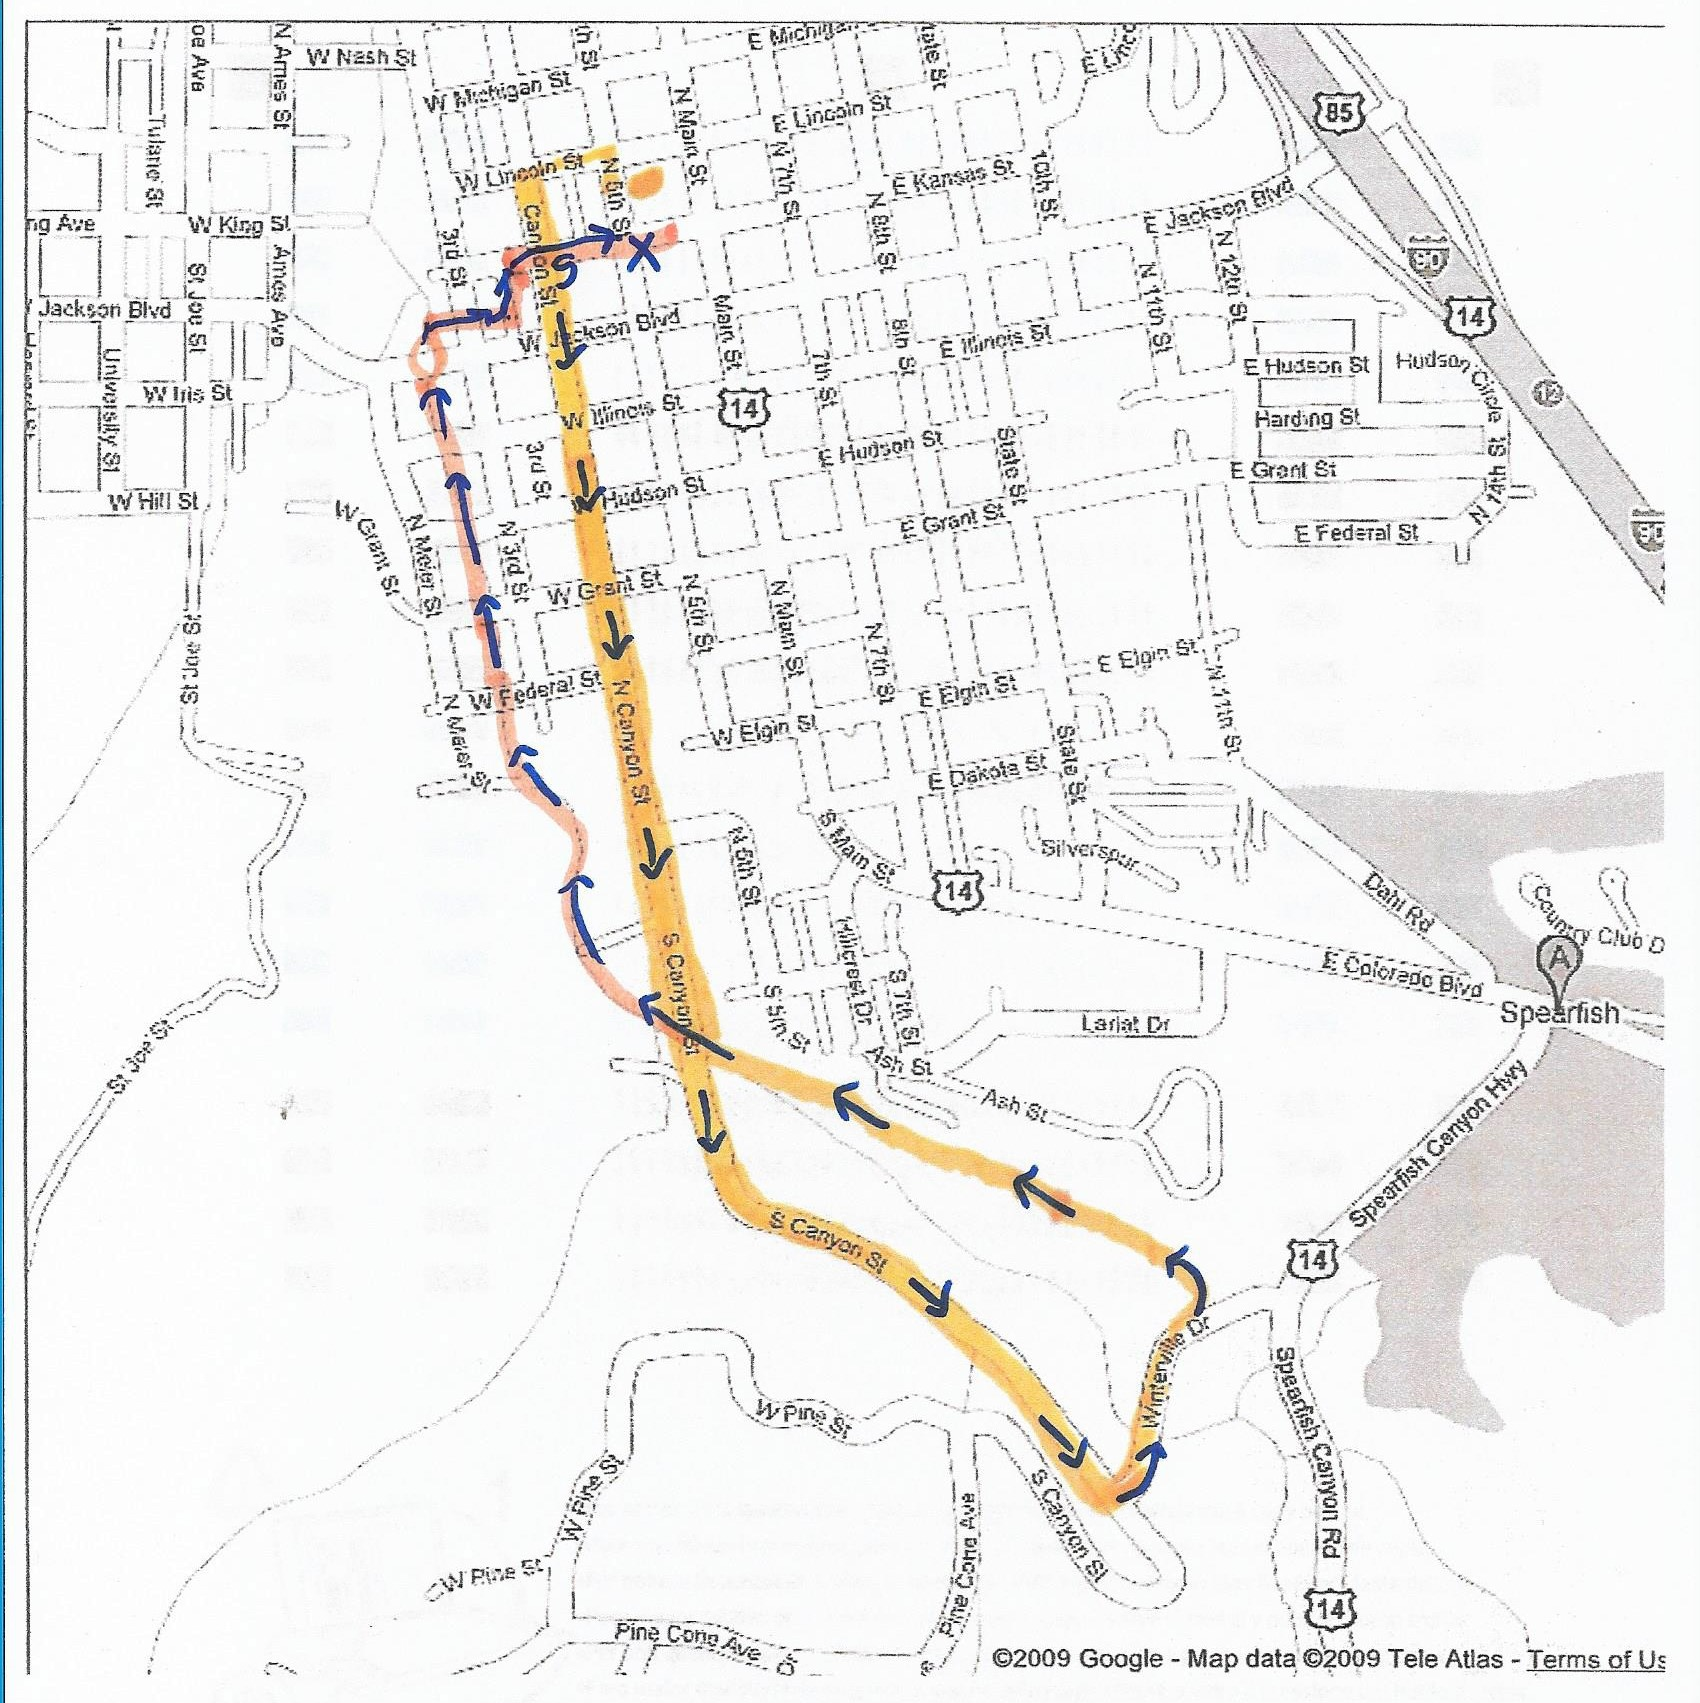 Course Map - 5K (3.1 miles)Starting near St. Joseph's Catholic Church, run along Canyon St, then Winterville Dr will connect you to the bike trail. Follow the bike trail back to the Fish Hatchery, along the creek in the City Park, through Salem Park, under the bridge at Jackson Blvd, and back to the finish line on Kansas St.